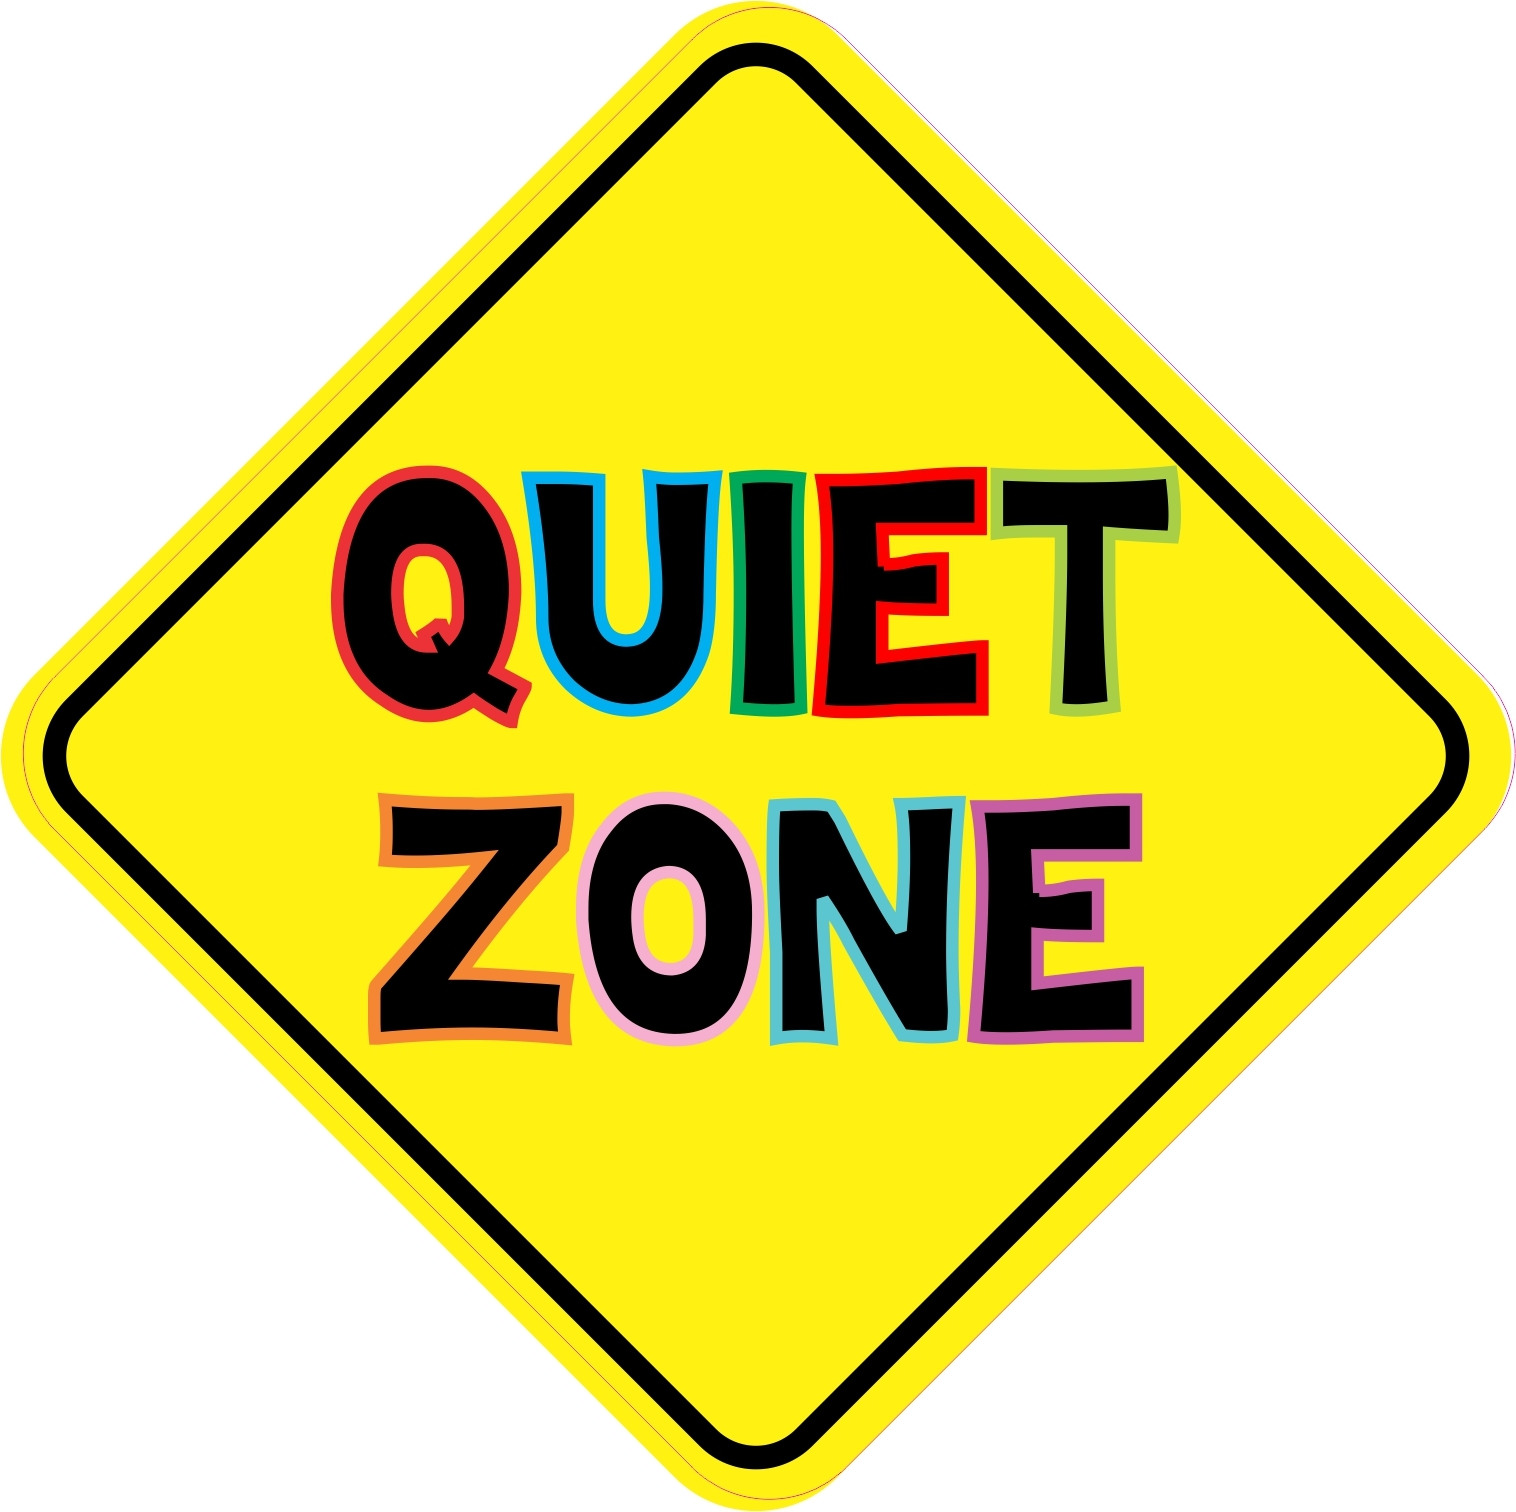 Keep quiet sign clipart clipart images gallery for free.